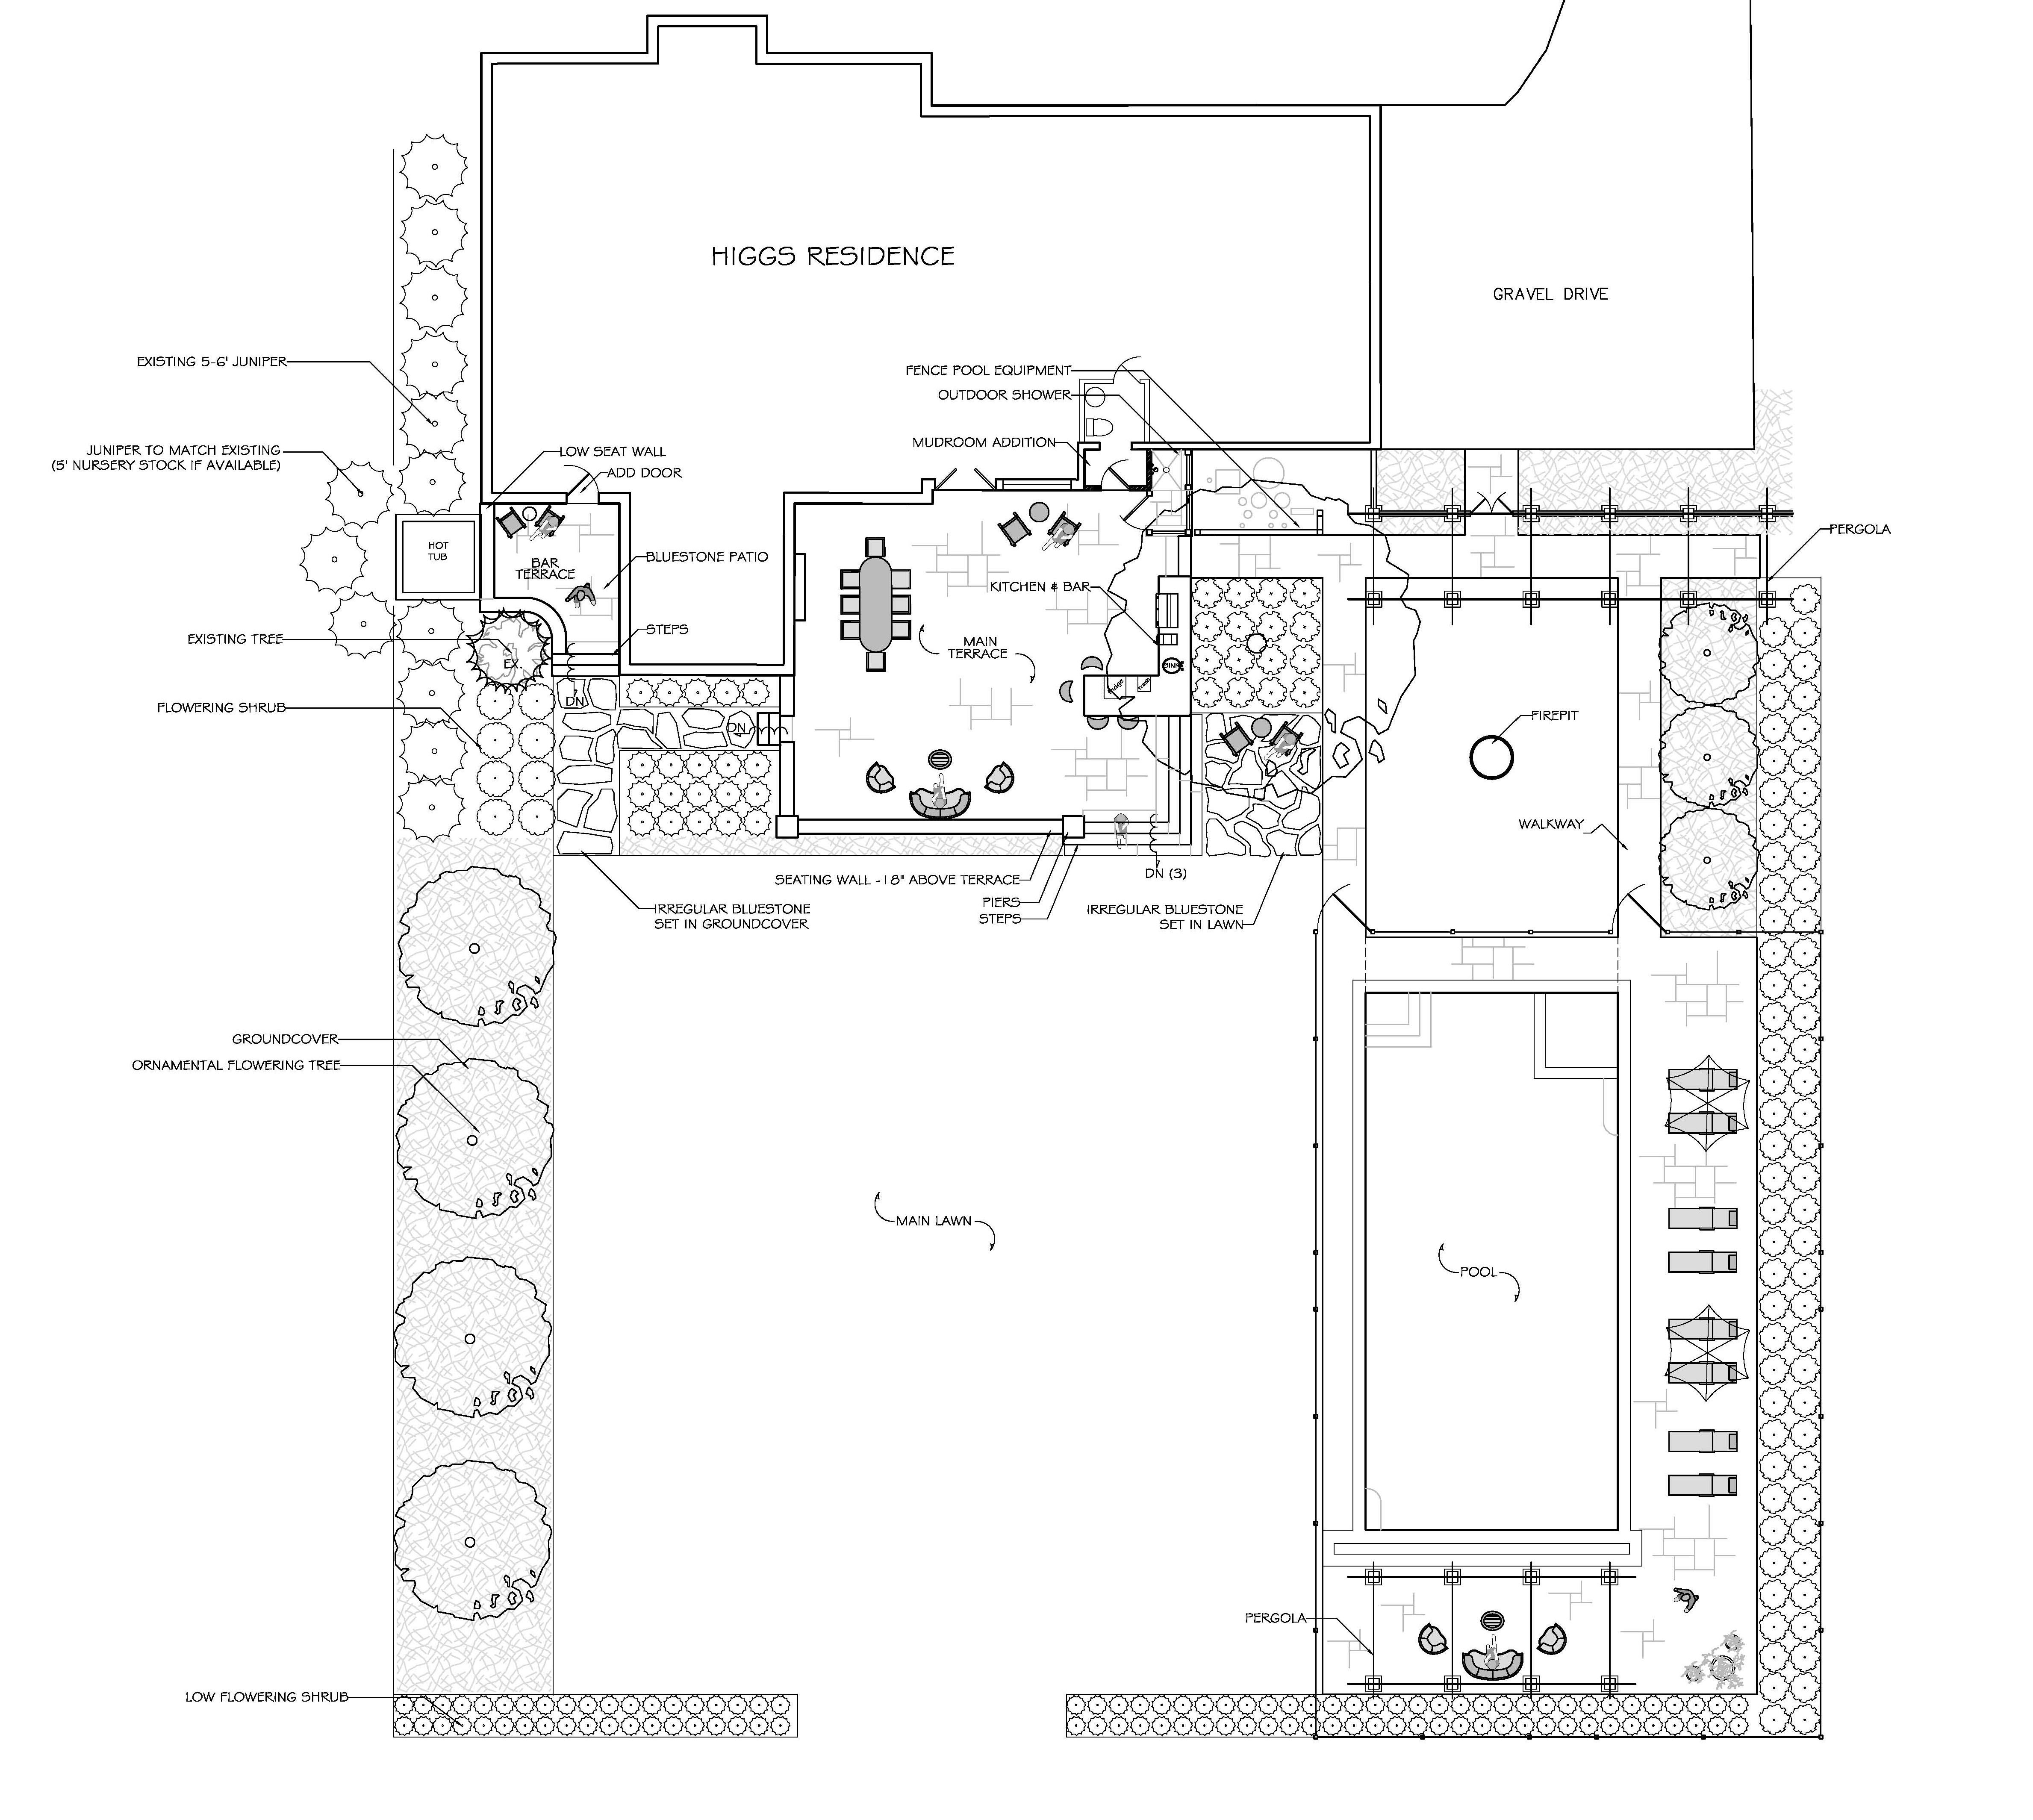 Landscape Plans For A Formal Garden With Swimming Pool Outdoor Kitchen Pergola Terraces Walls An Landscape Plans Garden Planning Front Yard Landscaping Diy